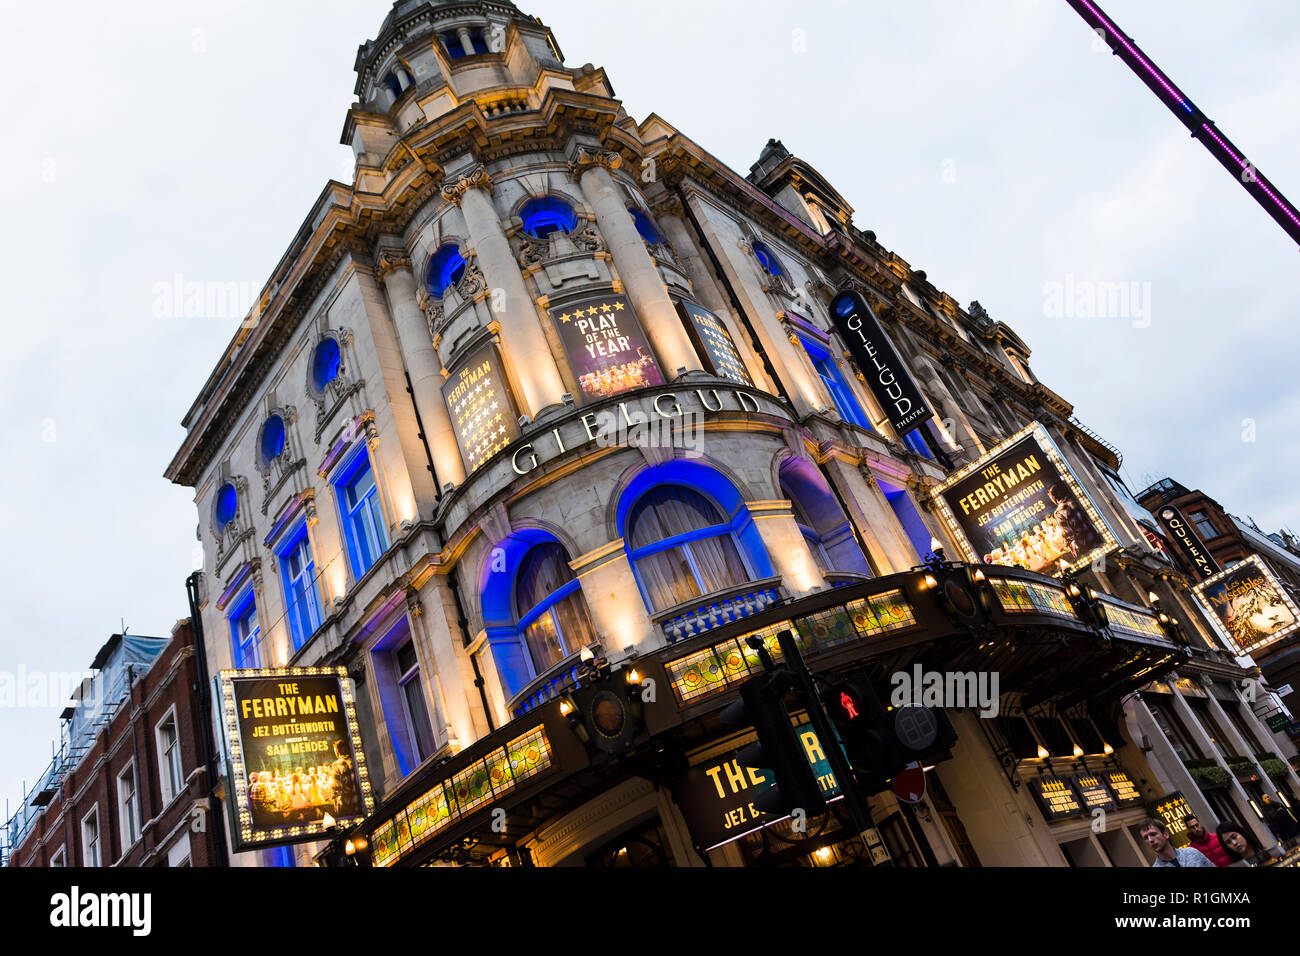 The Gielgud Theatre is a West End theatre, located on Shaftesbury Avenue in the City of Westminster, London, at the corner of Rupert Street. The Ferry - Stock Image